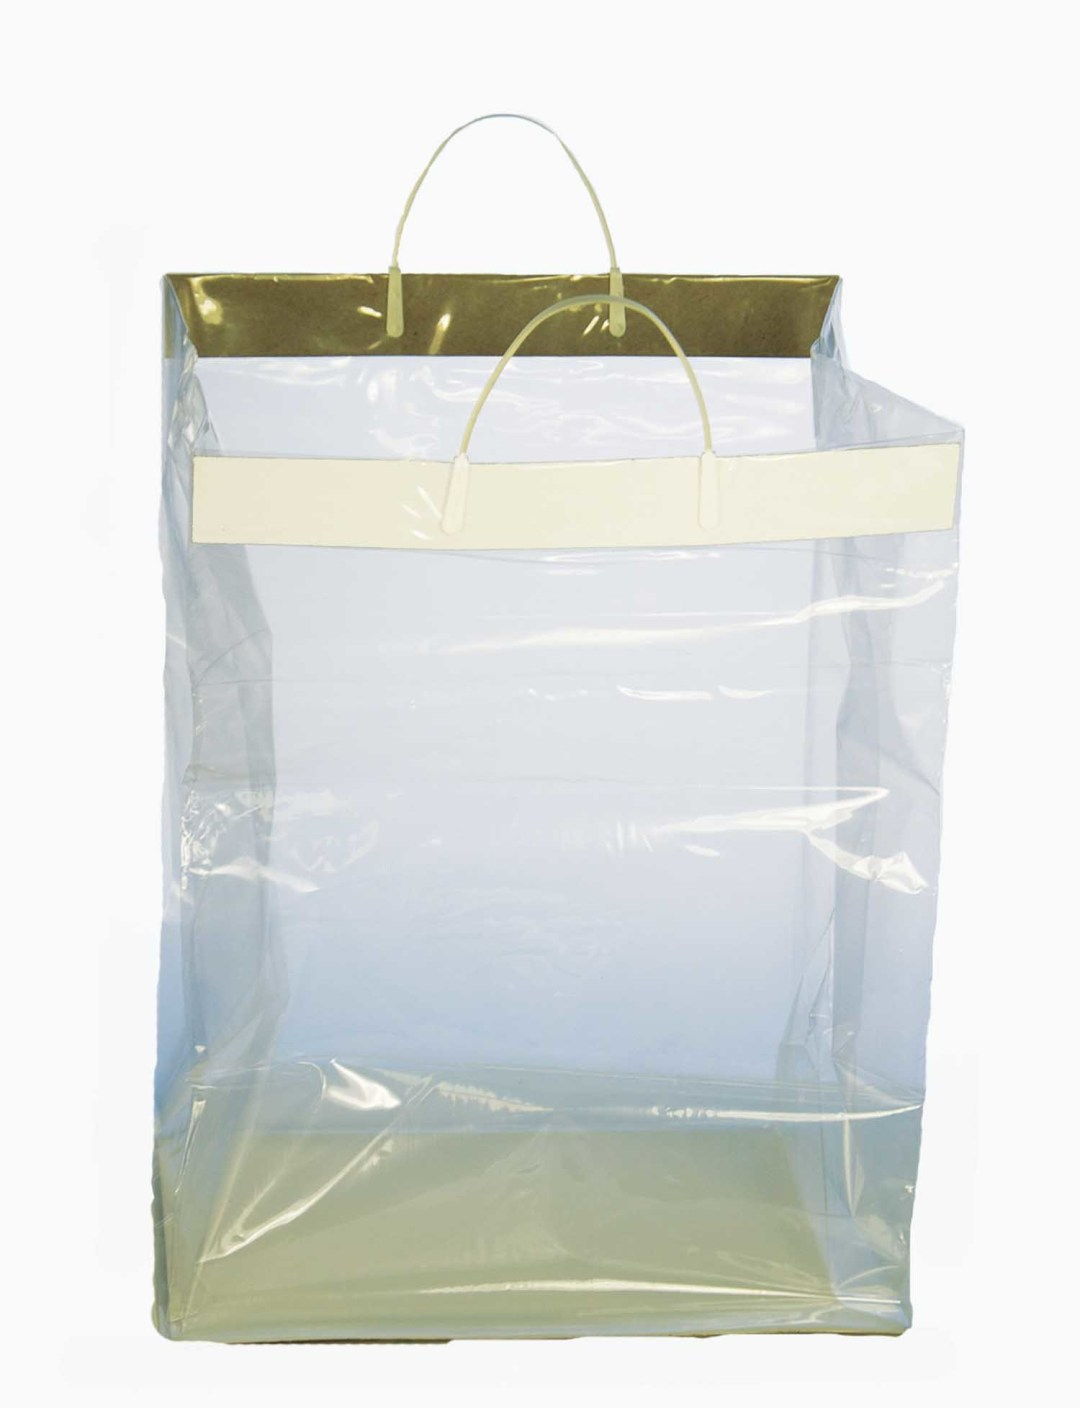 "FS6002 - Heavy Poly Shopping Bag 13"" X 11"" X 19"" Tall Pack of 100 $114.00 FS6002"